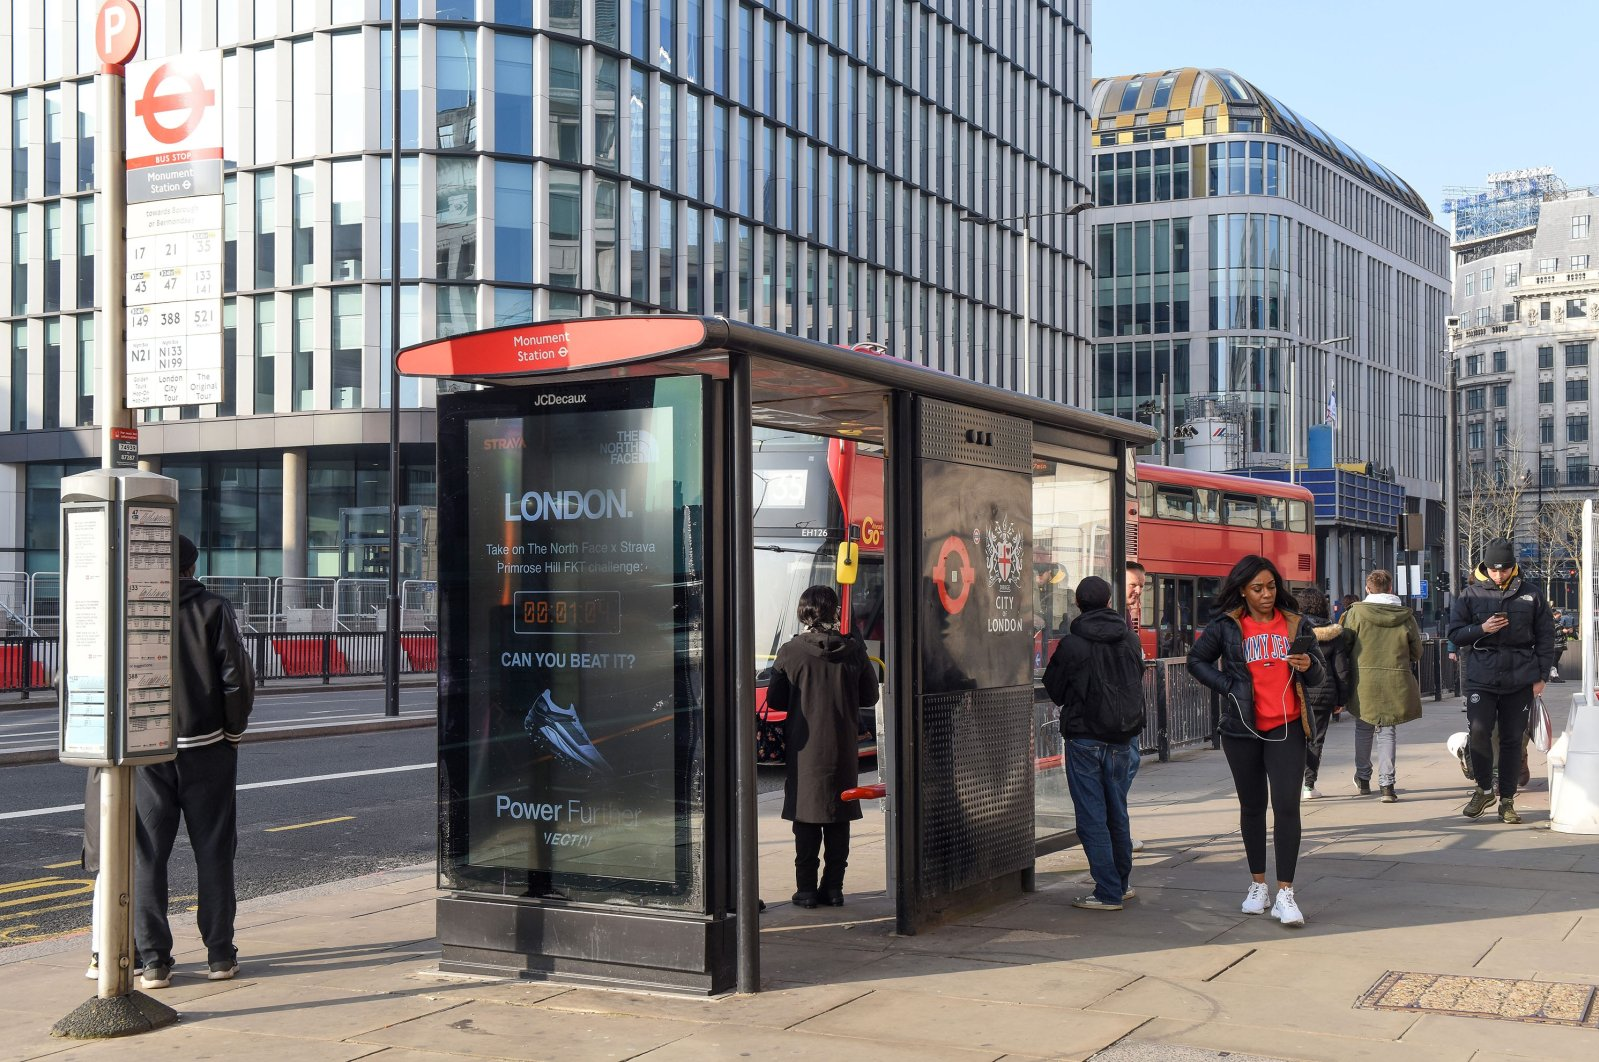 Commuters waiting for the bus at a bus stop in London, U.K., March 2, 2021. (Reuters Photo)